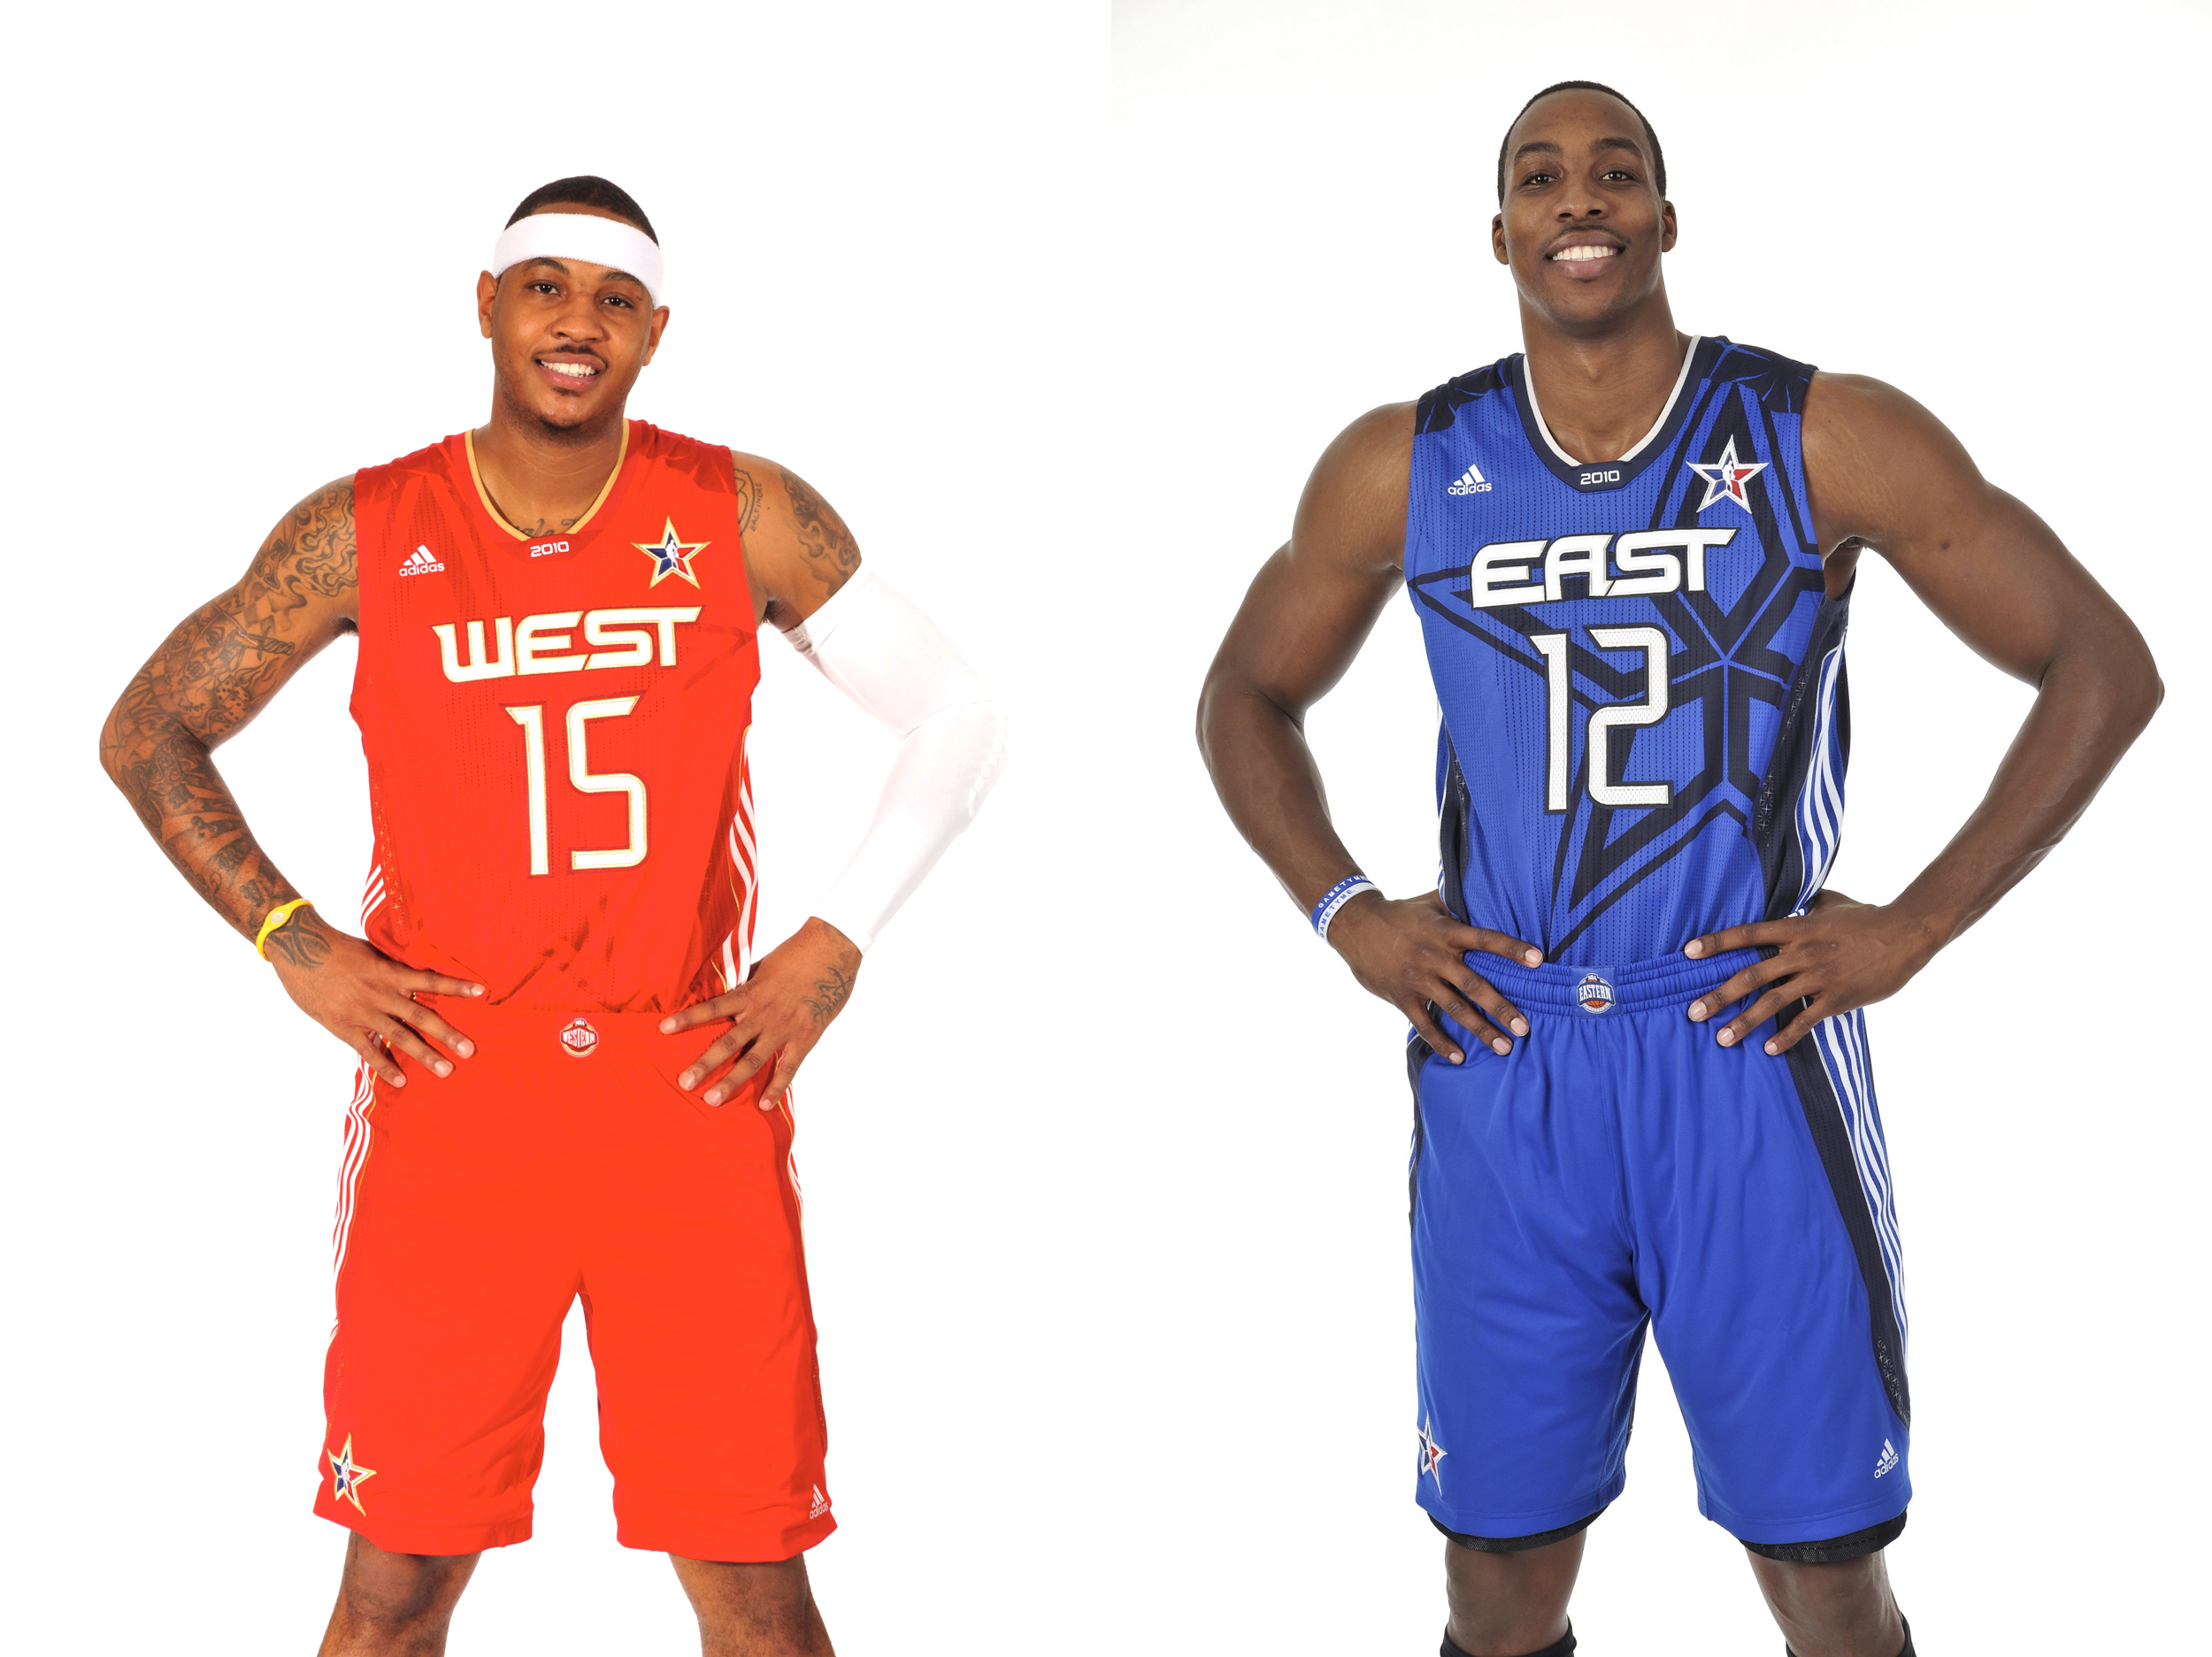 Carmelo Anthony #15 of the Denver Nuggets and Dwight Howard #12 of the Orlando Magic pose in their 2010 All Star Uniform.